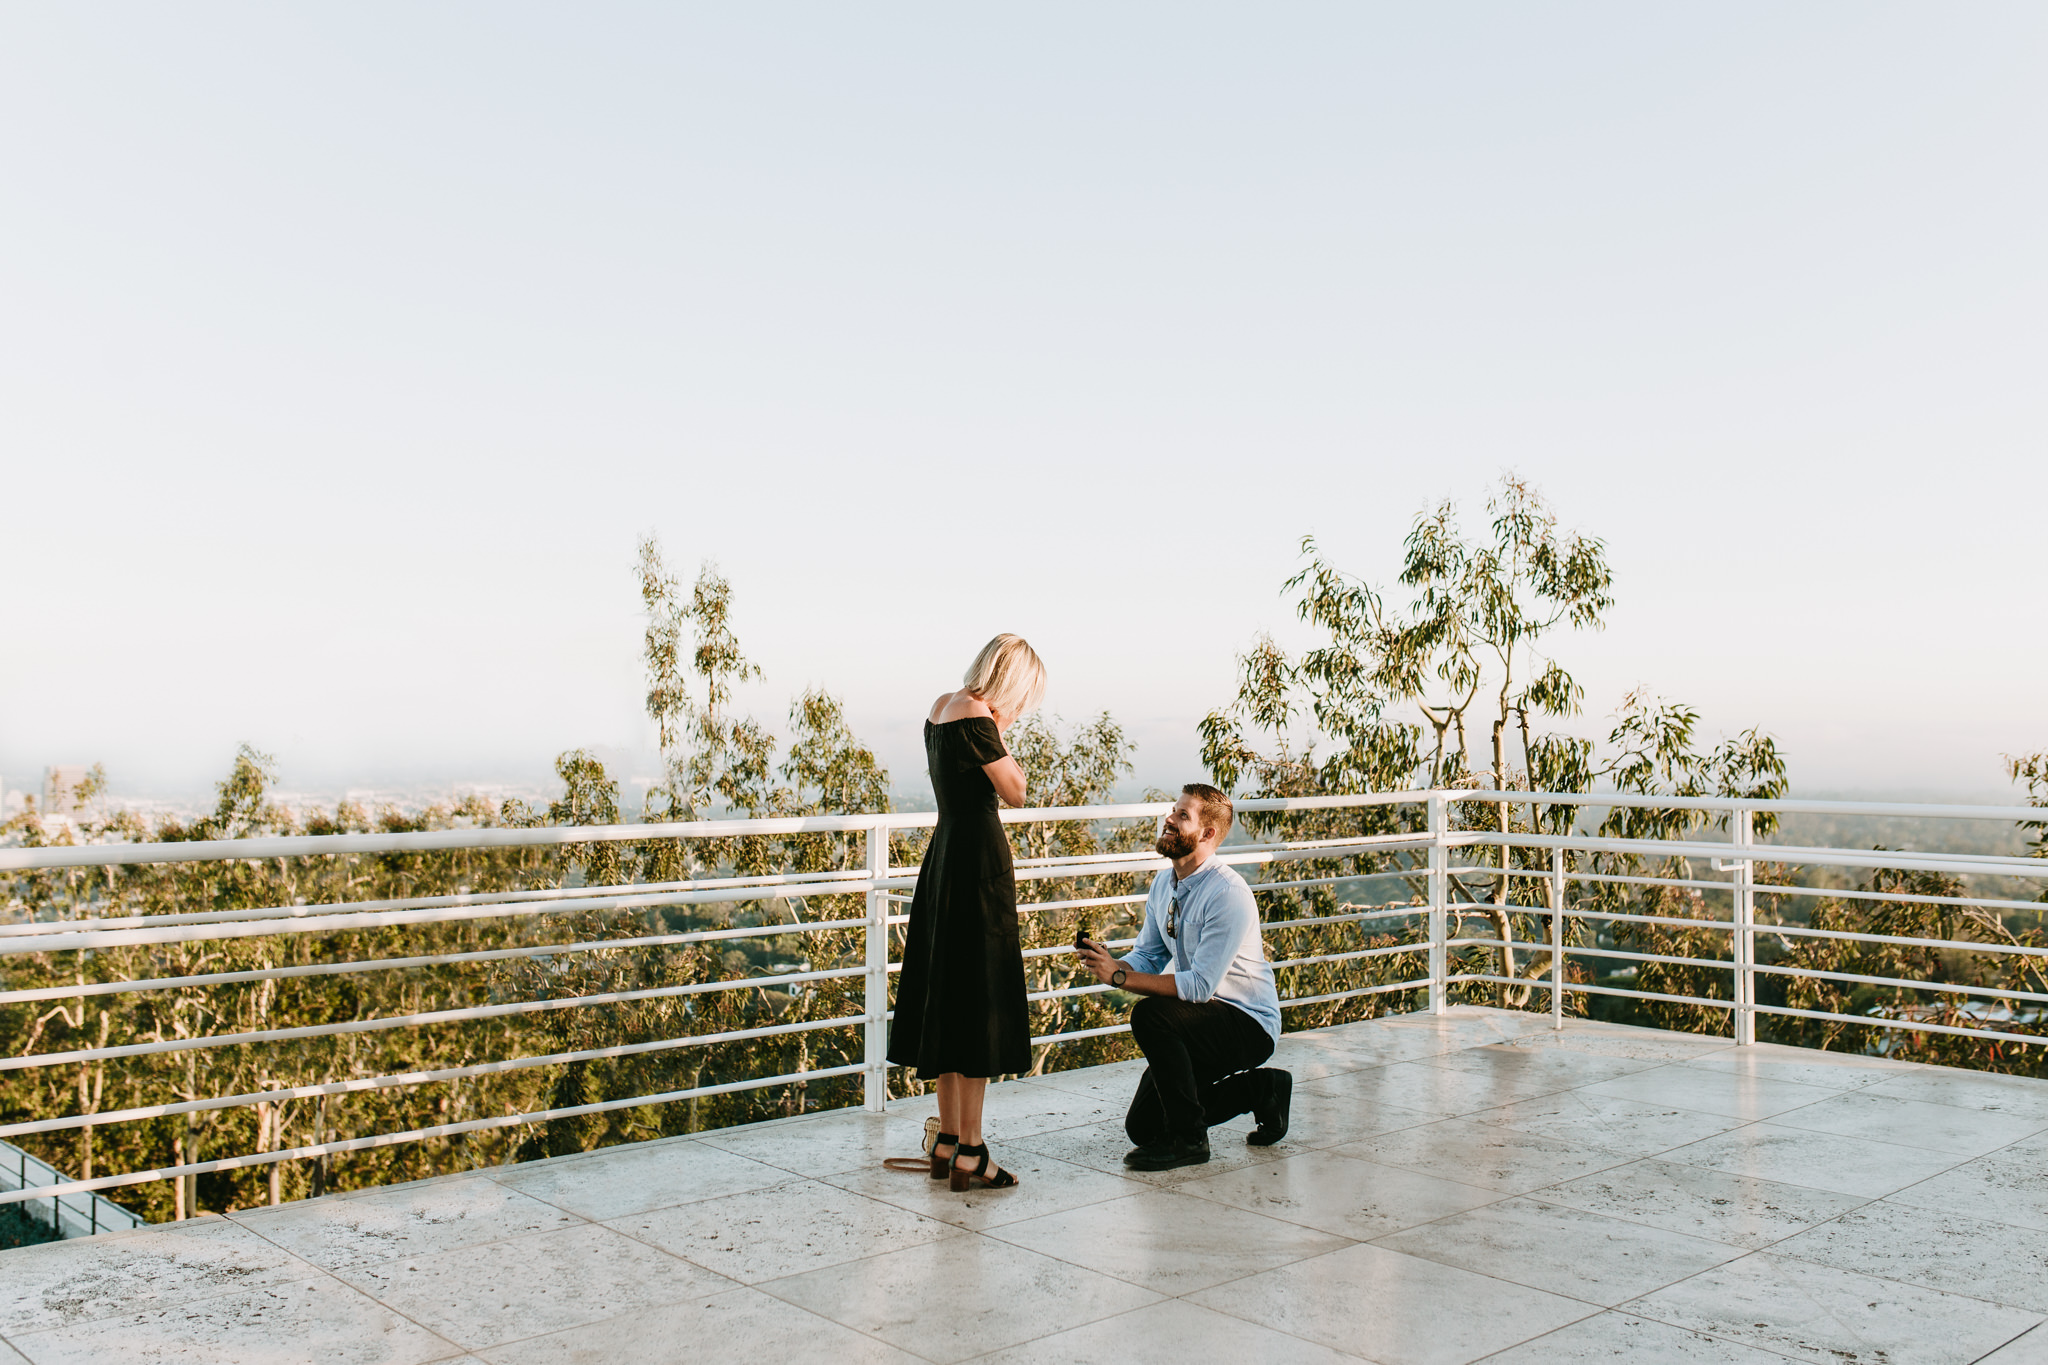 Sam & Tanner - The Getty Center, Los Angeles, CA - Proposal